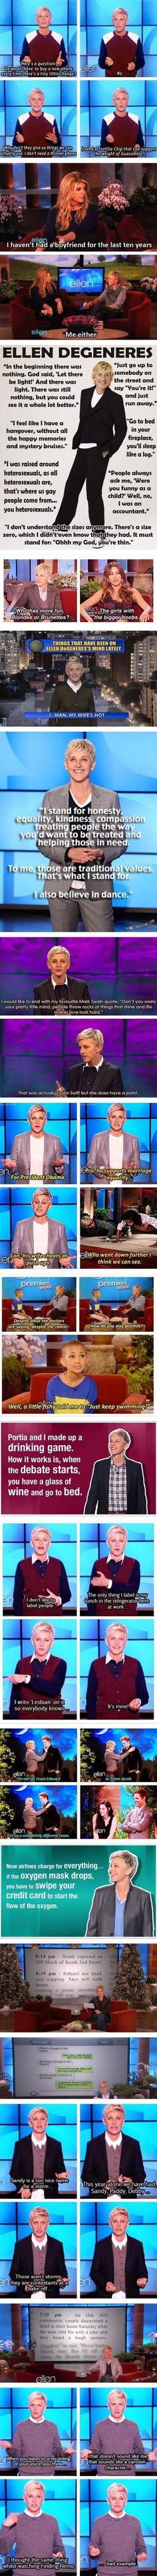 Read this if you need a laugh! I love Ellen!